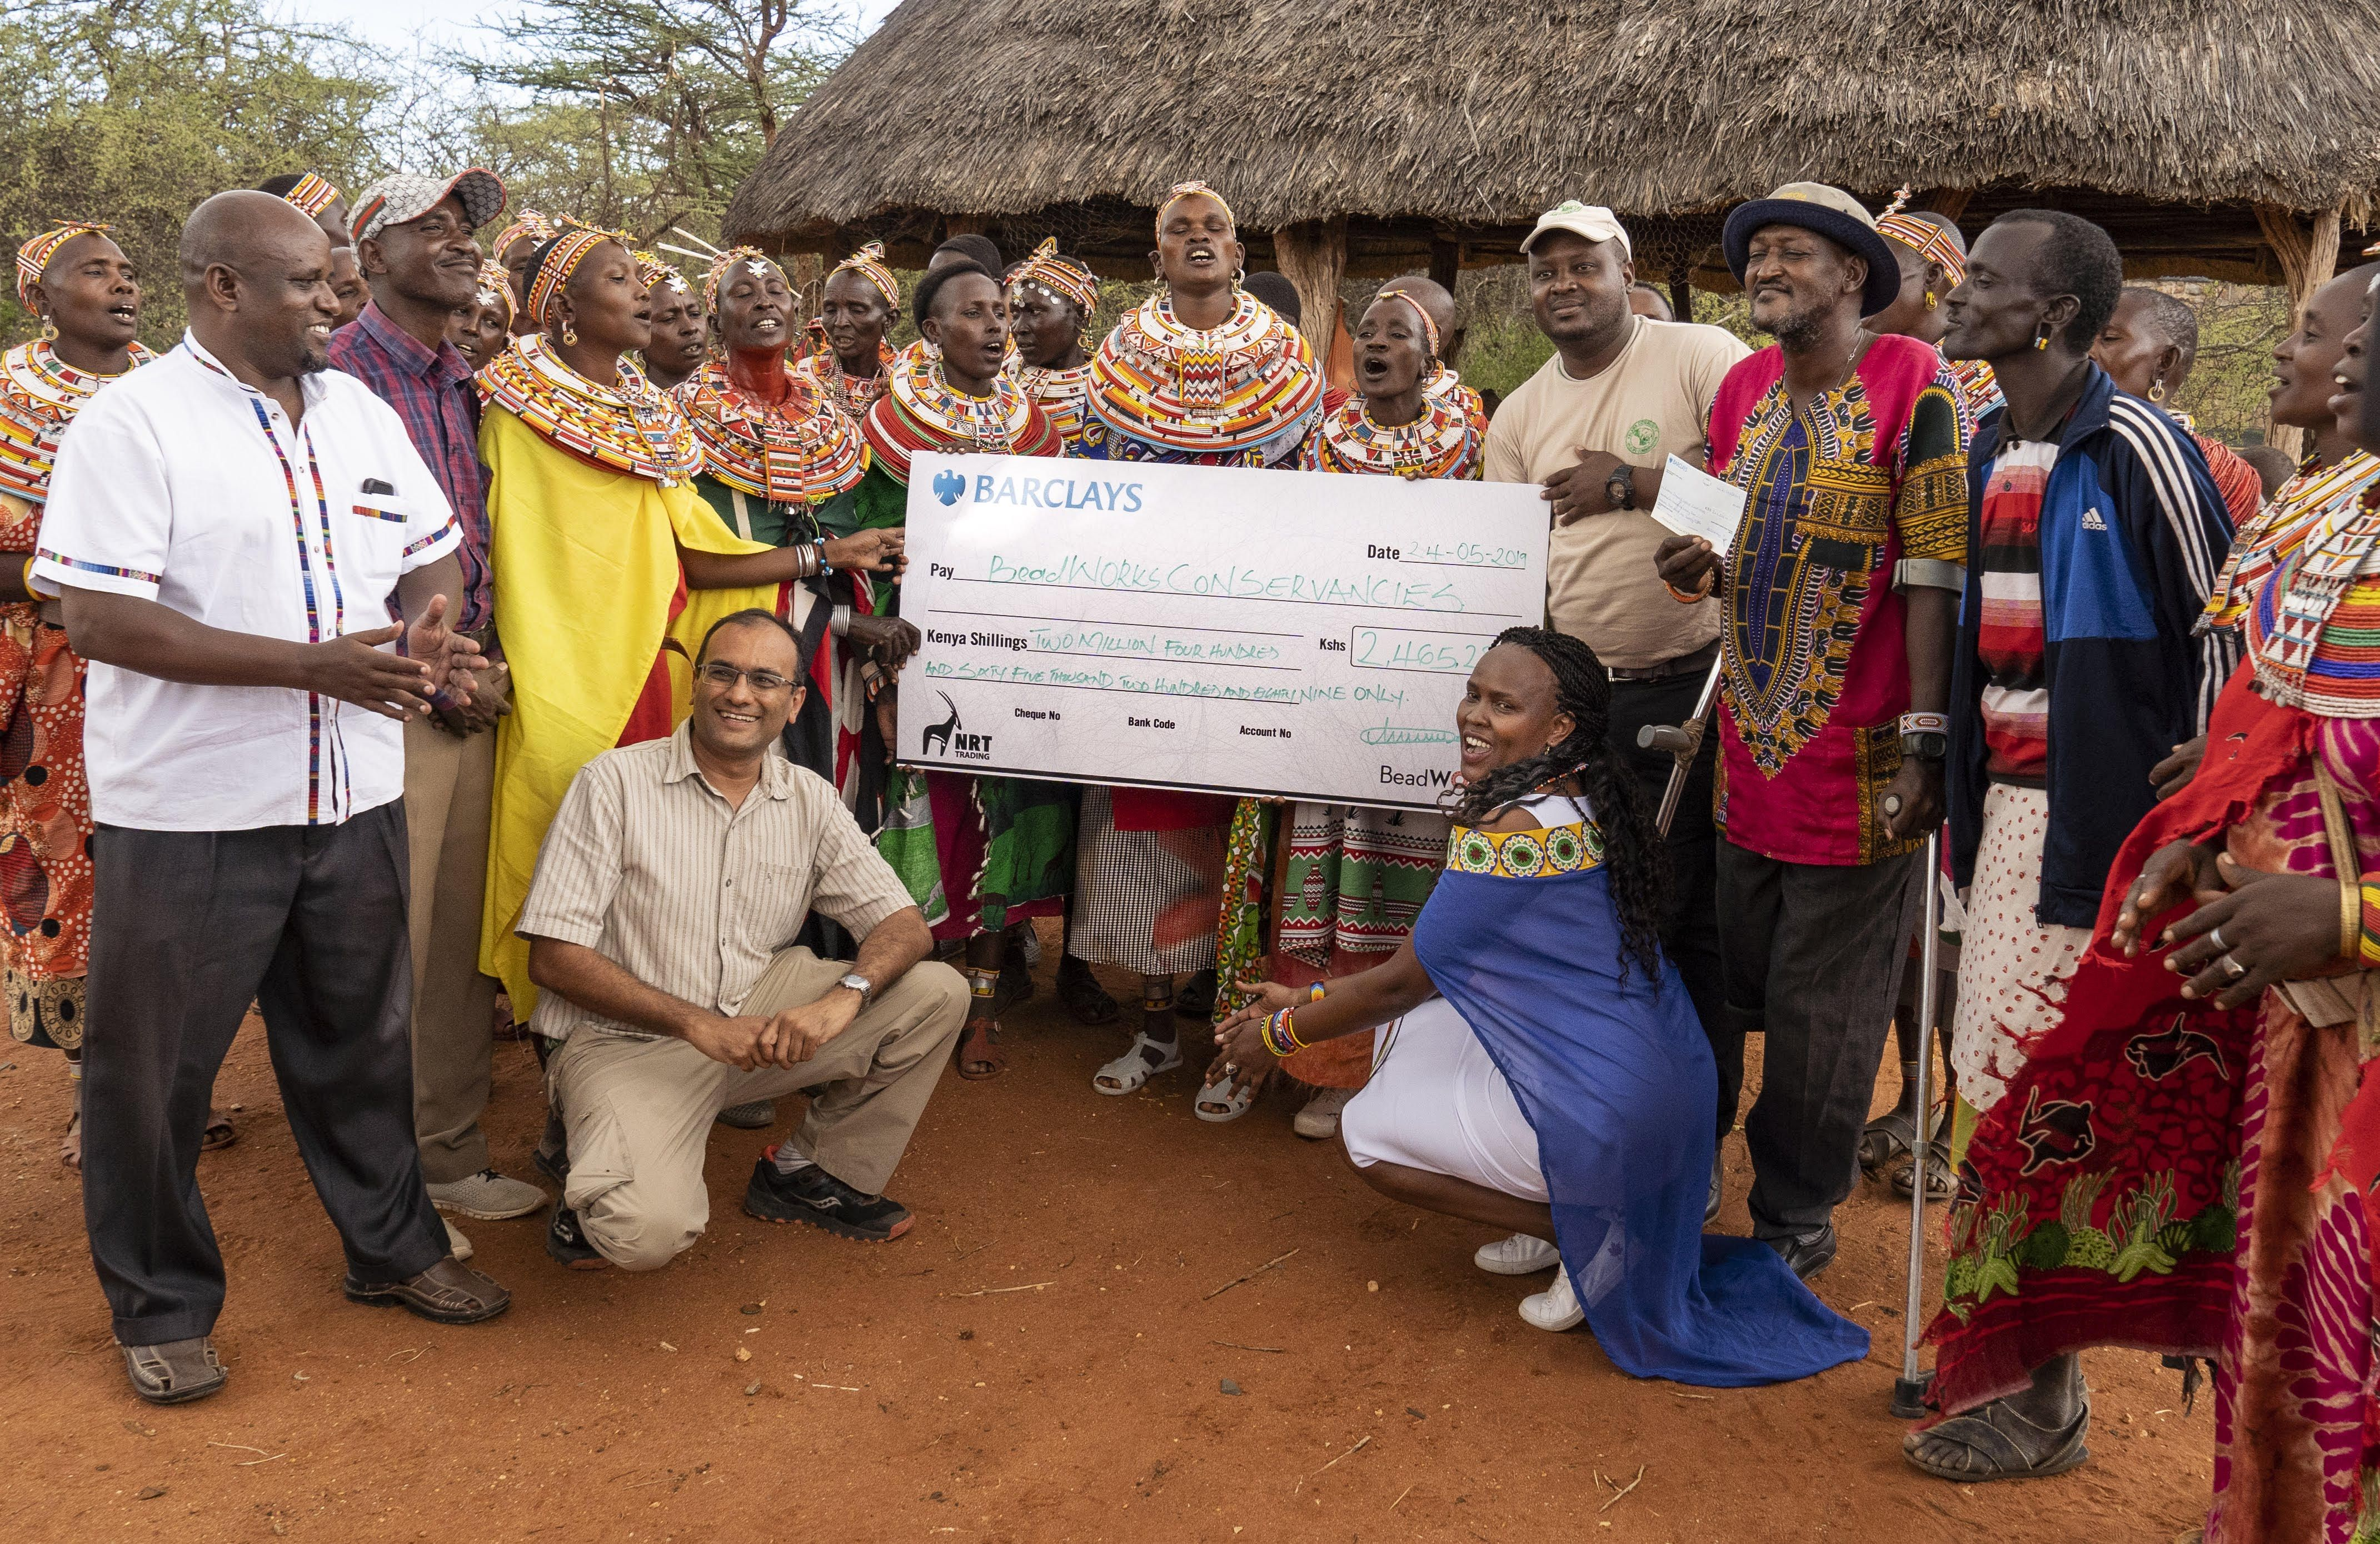 A group of people pose while holding a large check.